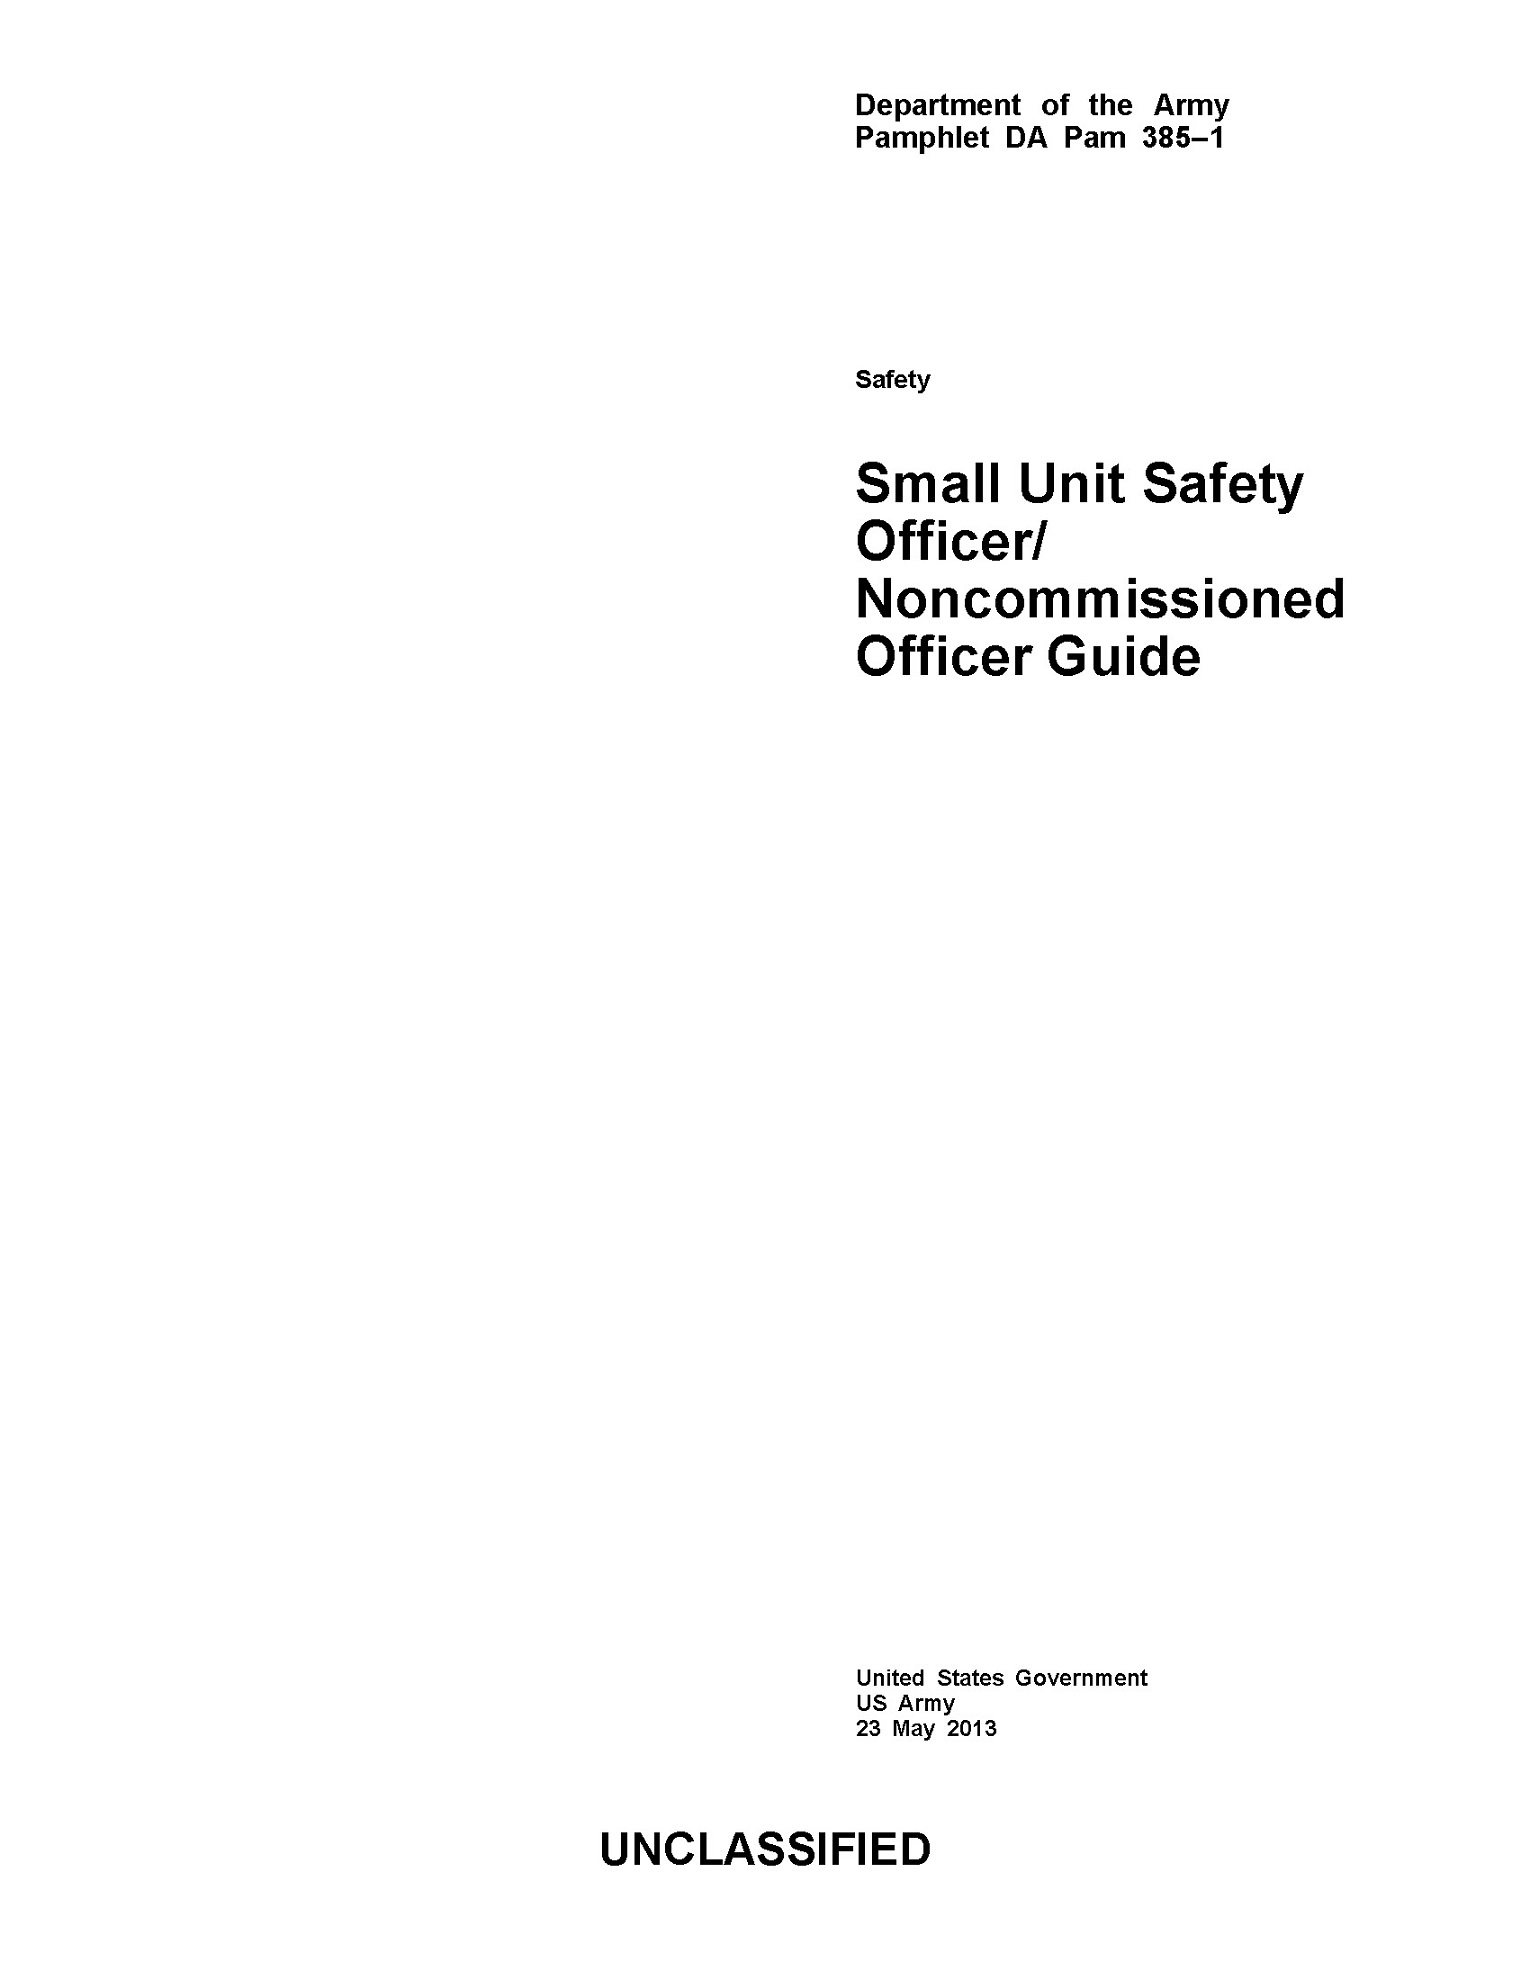 Department of the Army Pamphlet DA Pam 385-1 Small Unit Safety Officer/Noncommissioned Officer Guide